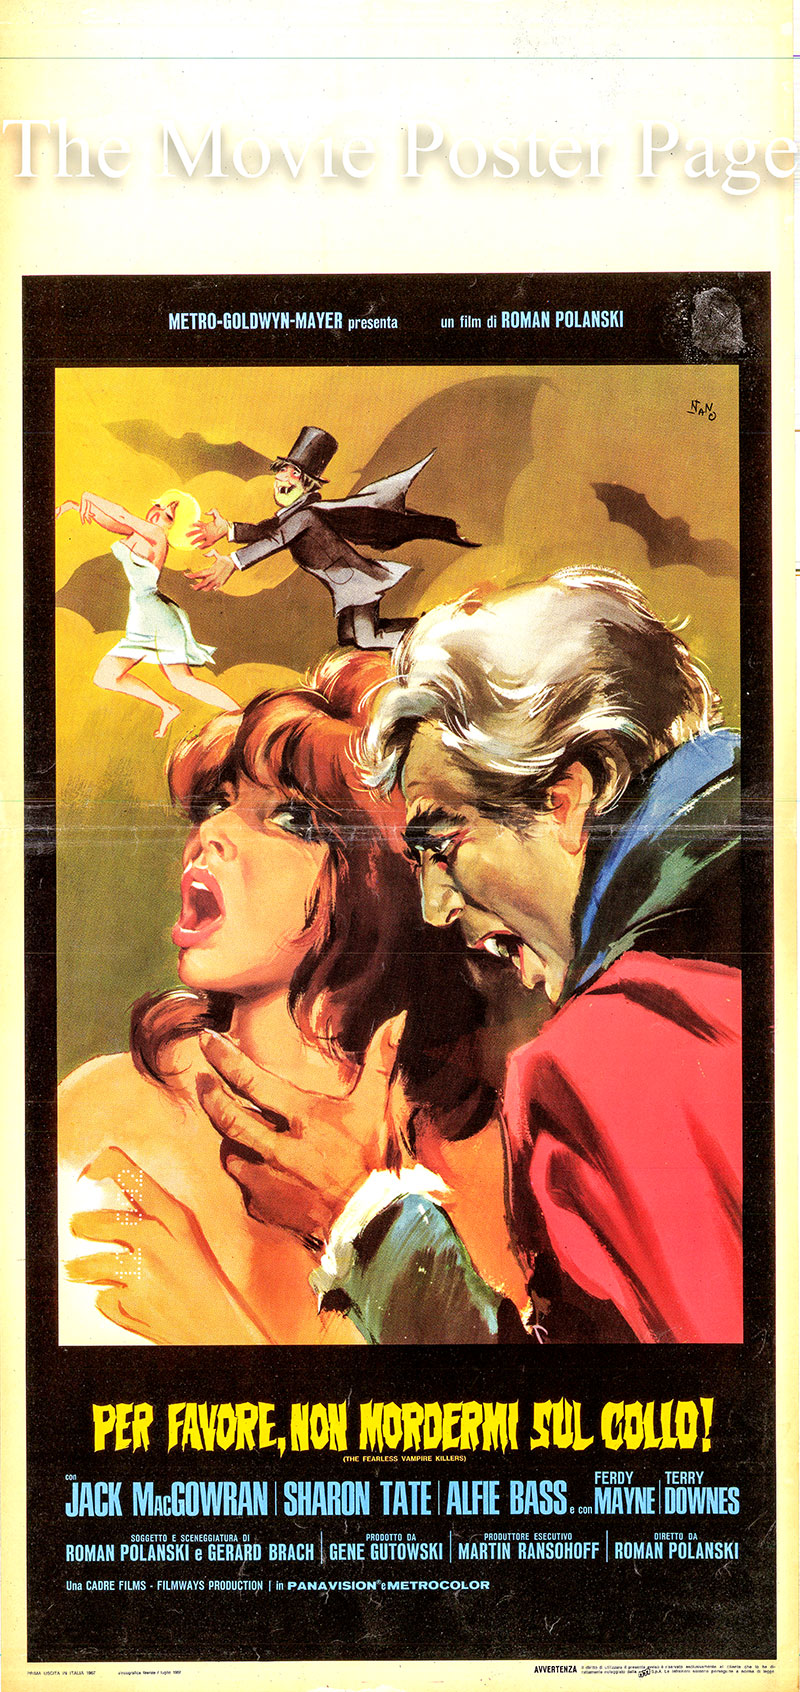 Pictured is an Italian locandina poster for the 1967 Roman Polanski film The Fearless Vampire Killers starring Jack MacGowran as Professor Abronsius.